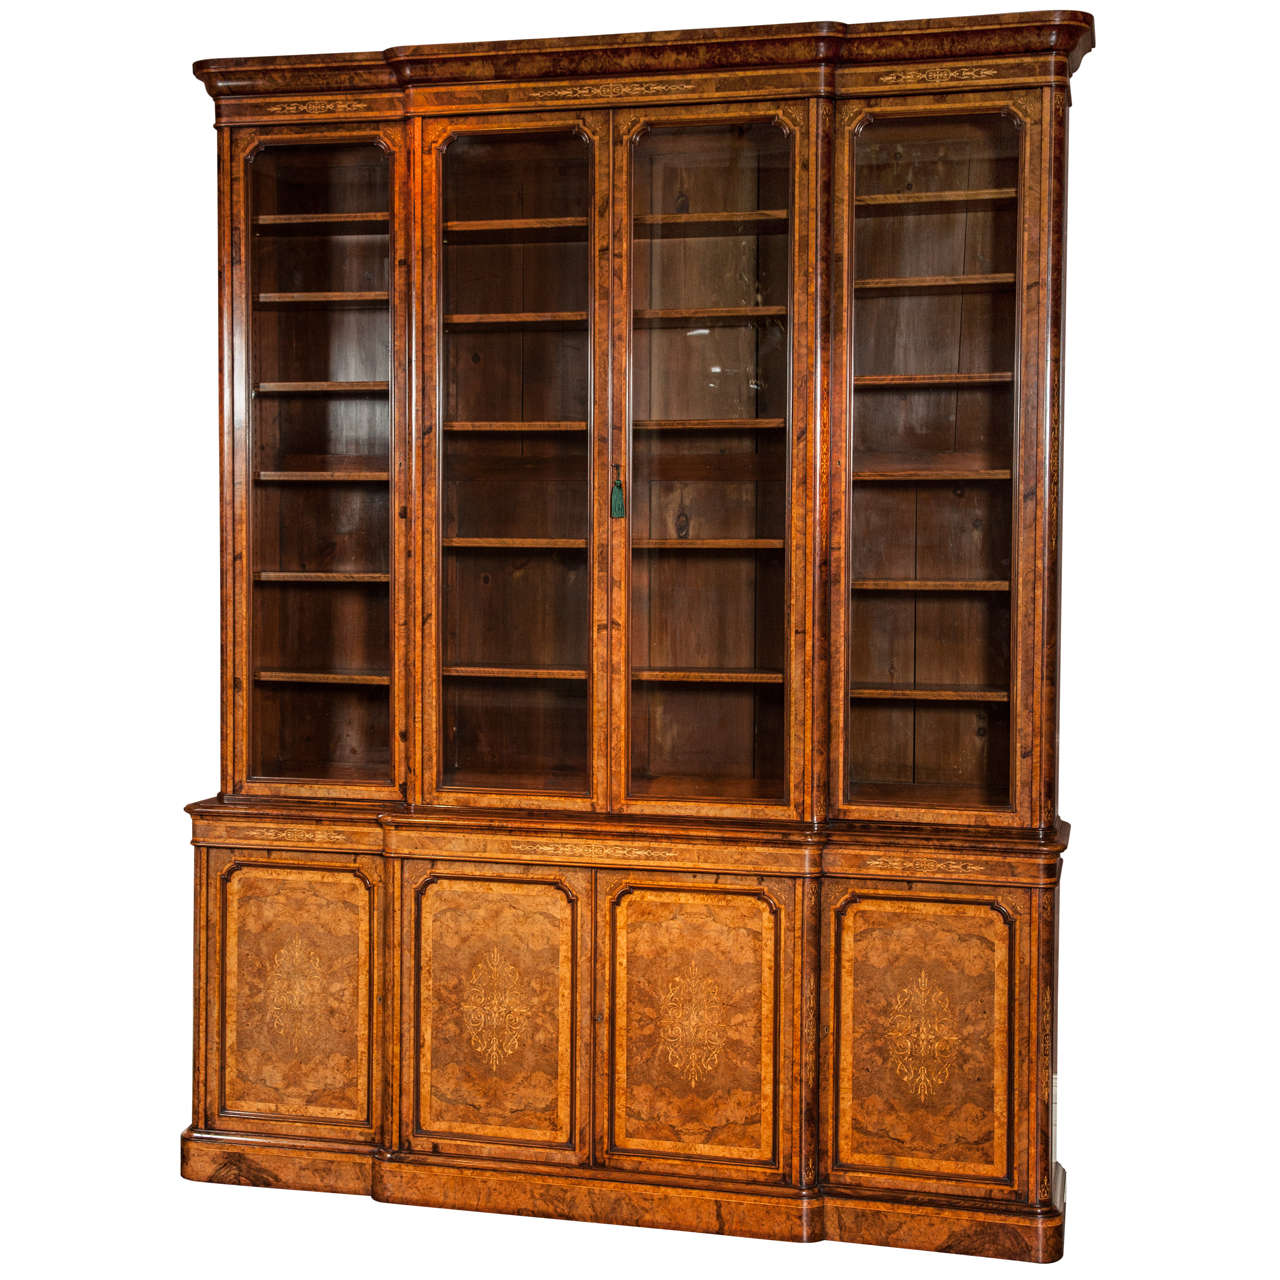 bookshelf chair for sale with casters breakfront library bookcase circa 1850 at 1stdibs